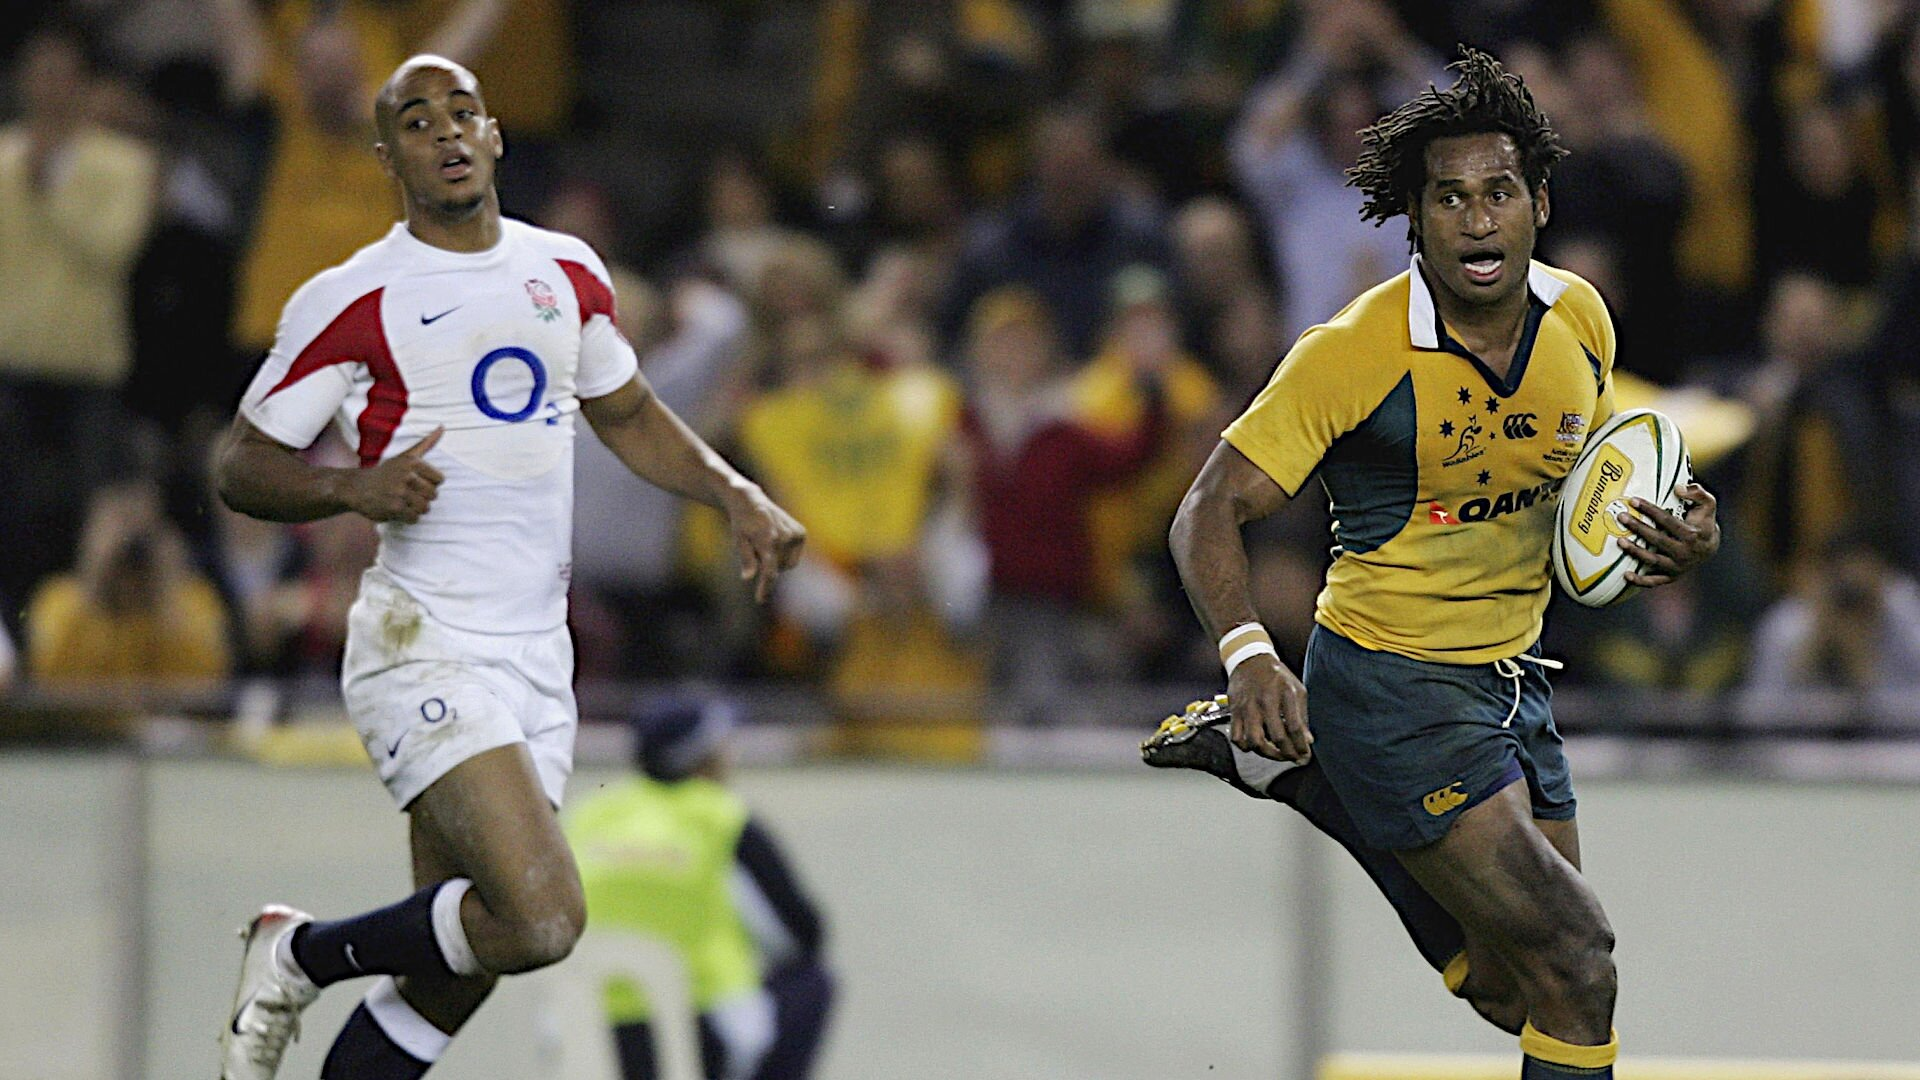 Lote Tuqiri highlights what he reckons is the key to beating England